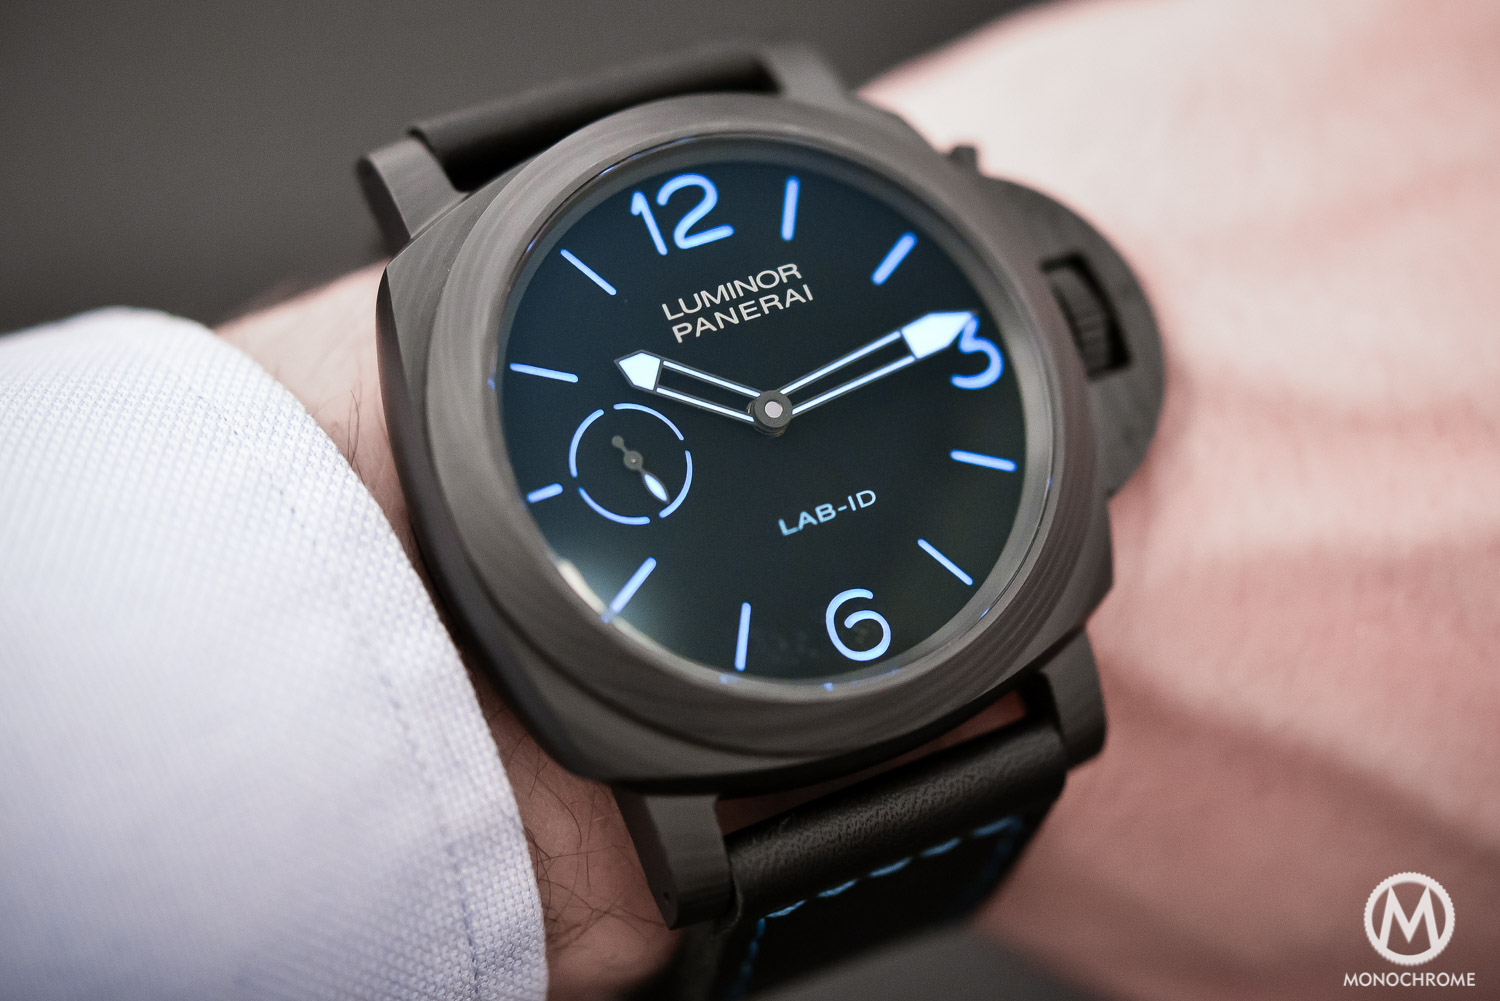 Panerai LAB-ID PAM700 – Pure Concentrate of Technology